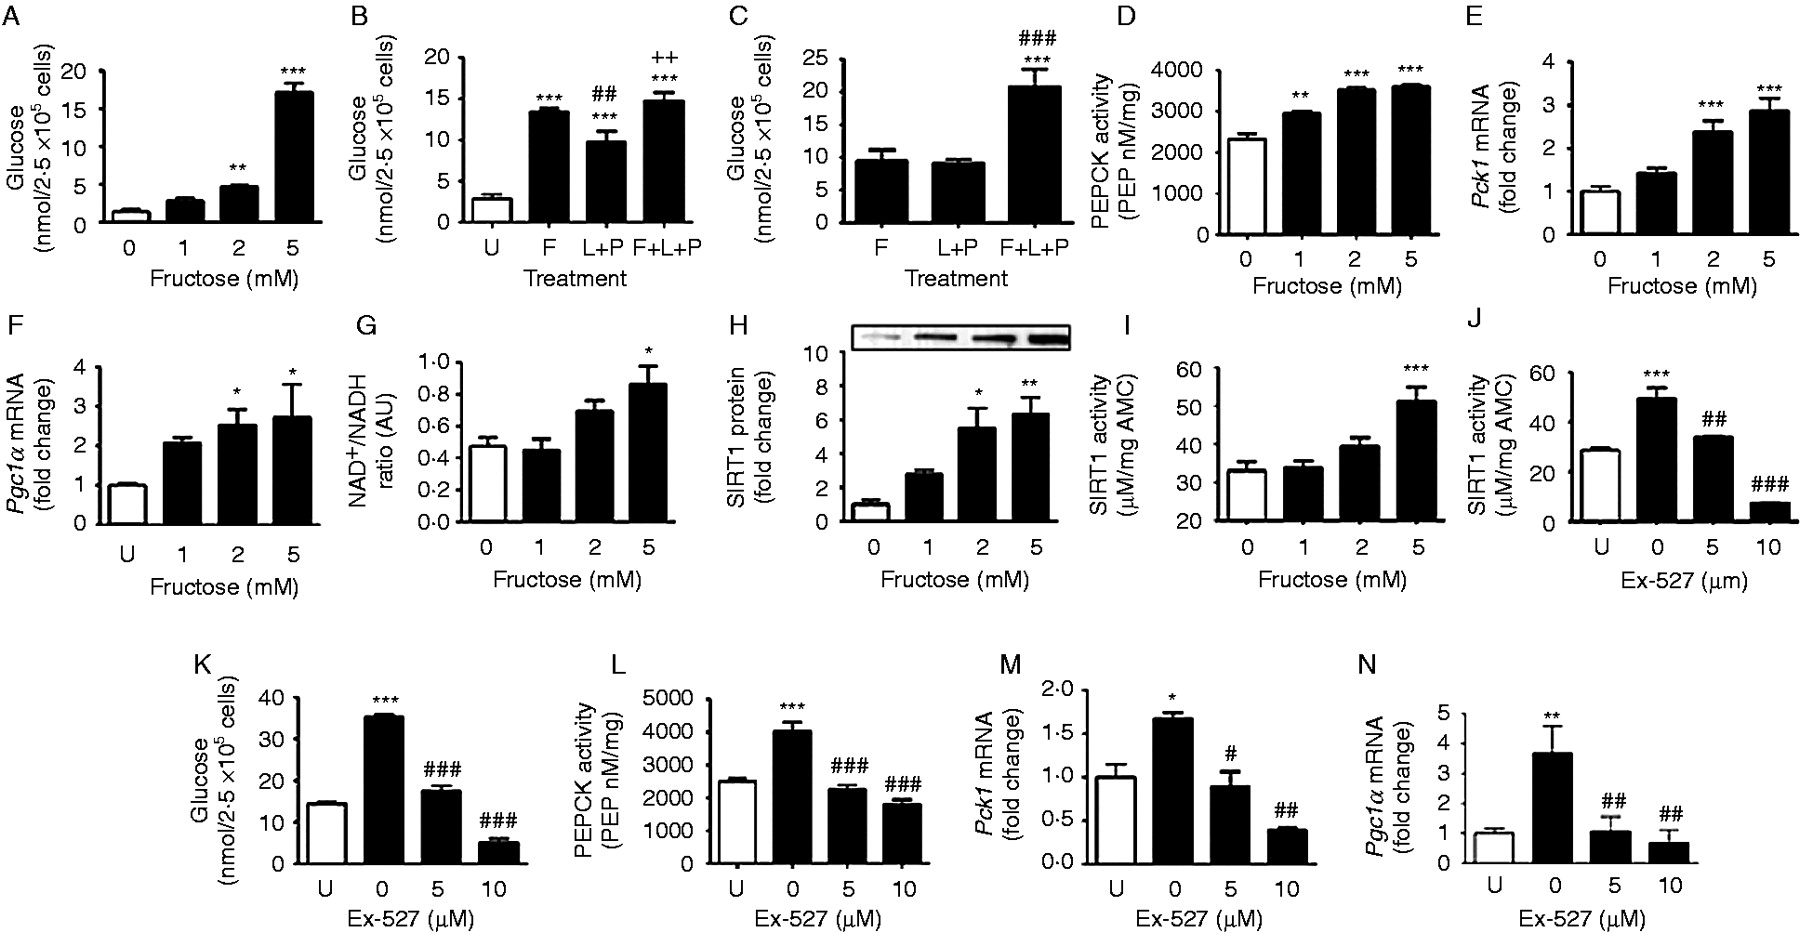 Fructose Induces Gluconeogenesis And Lipogenesis Through A Sirt1 Dependent Mechanism In Journal